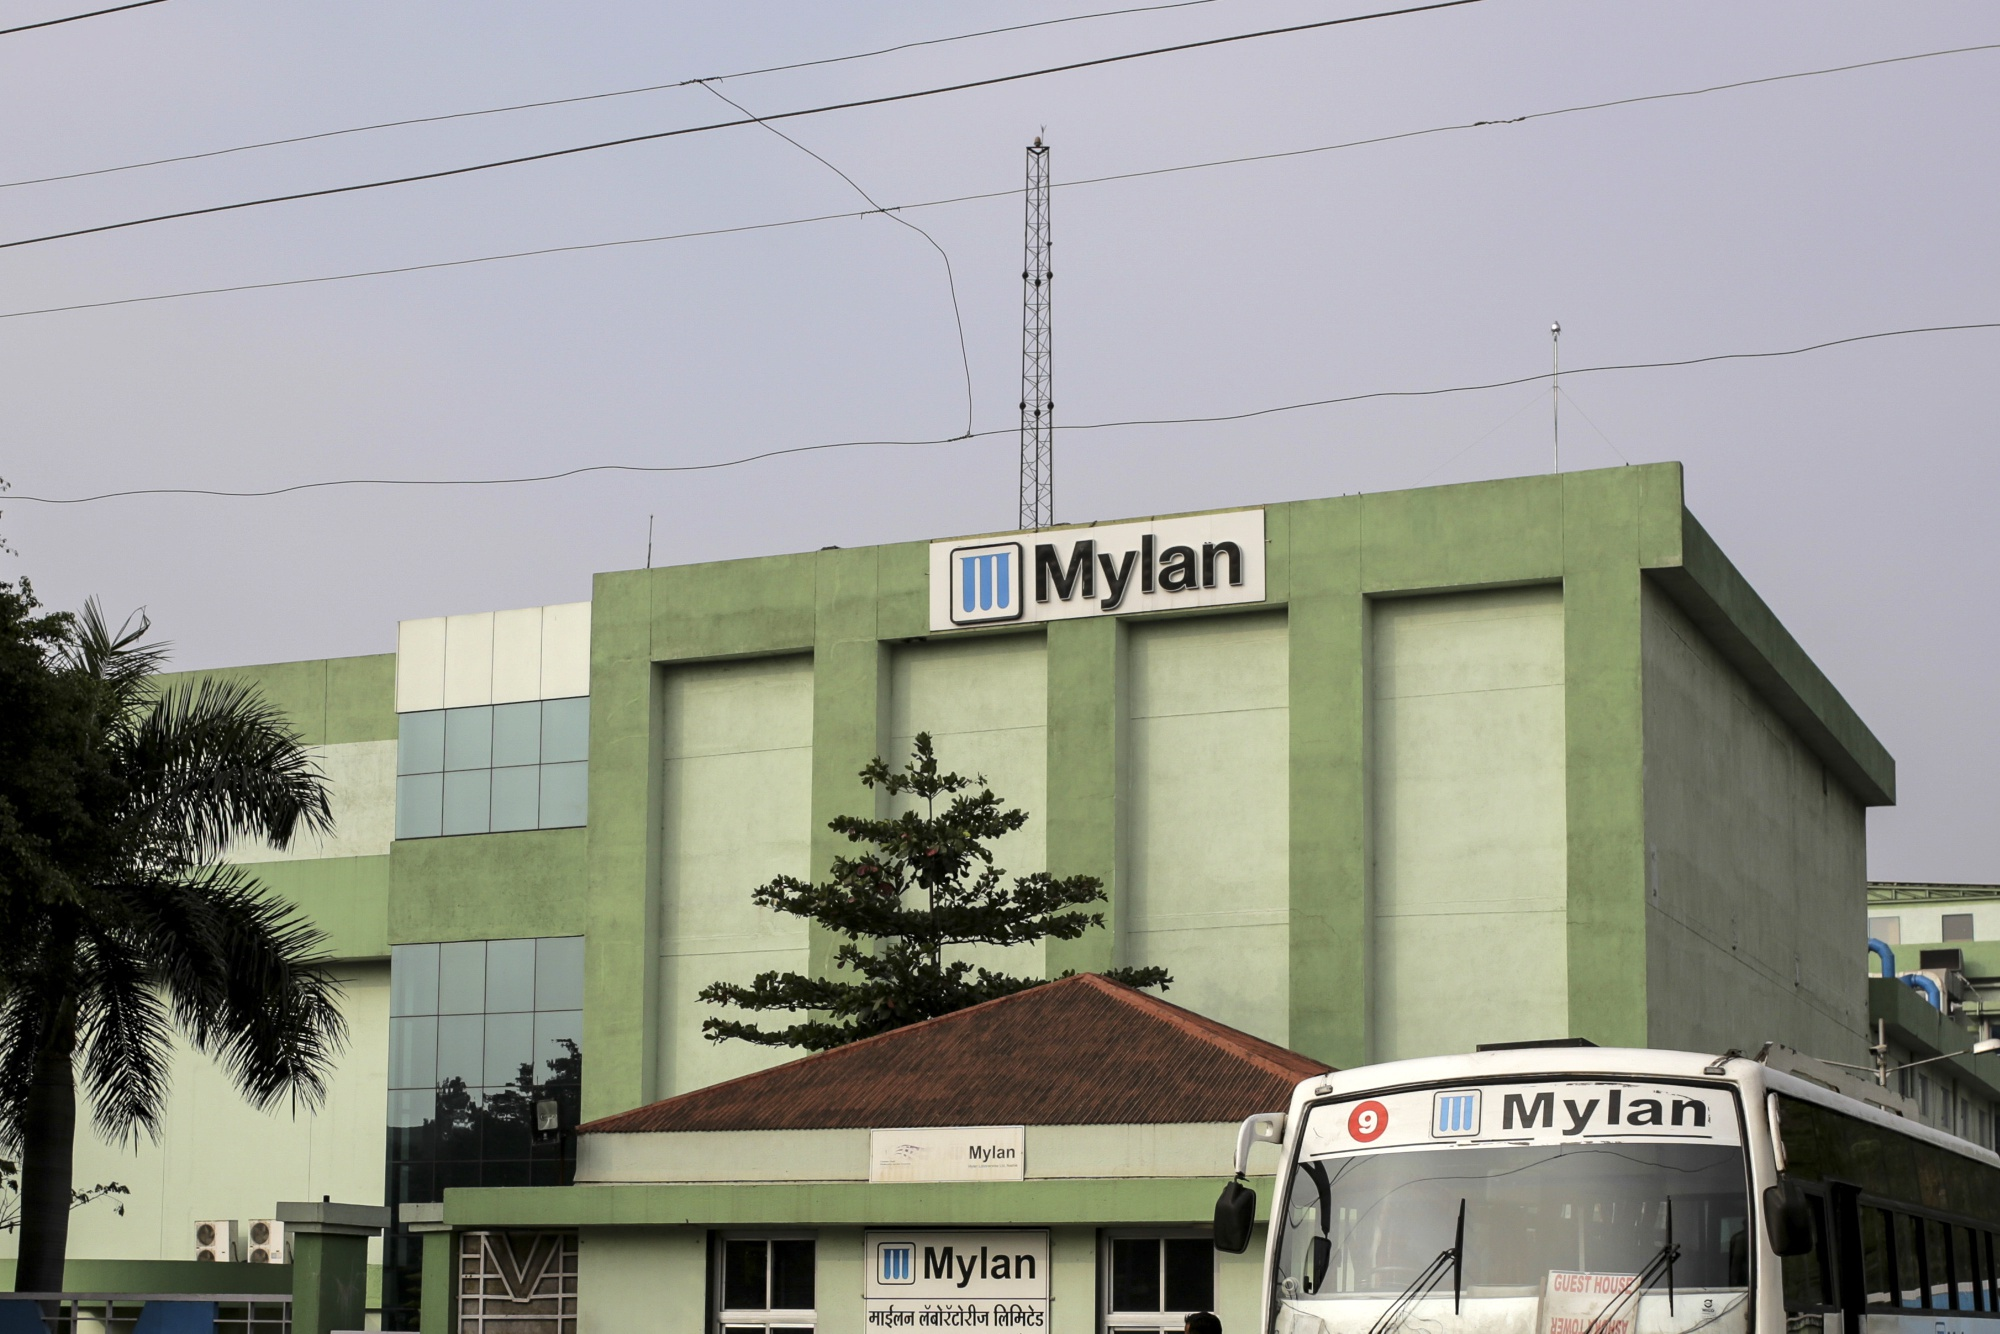 Mylan Drops Most in Three Years Despite Vow of Shift - Bloomberg